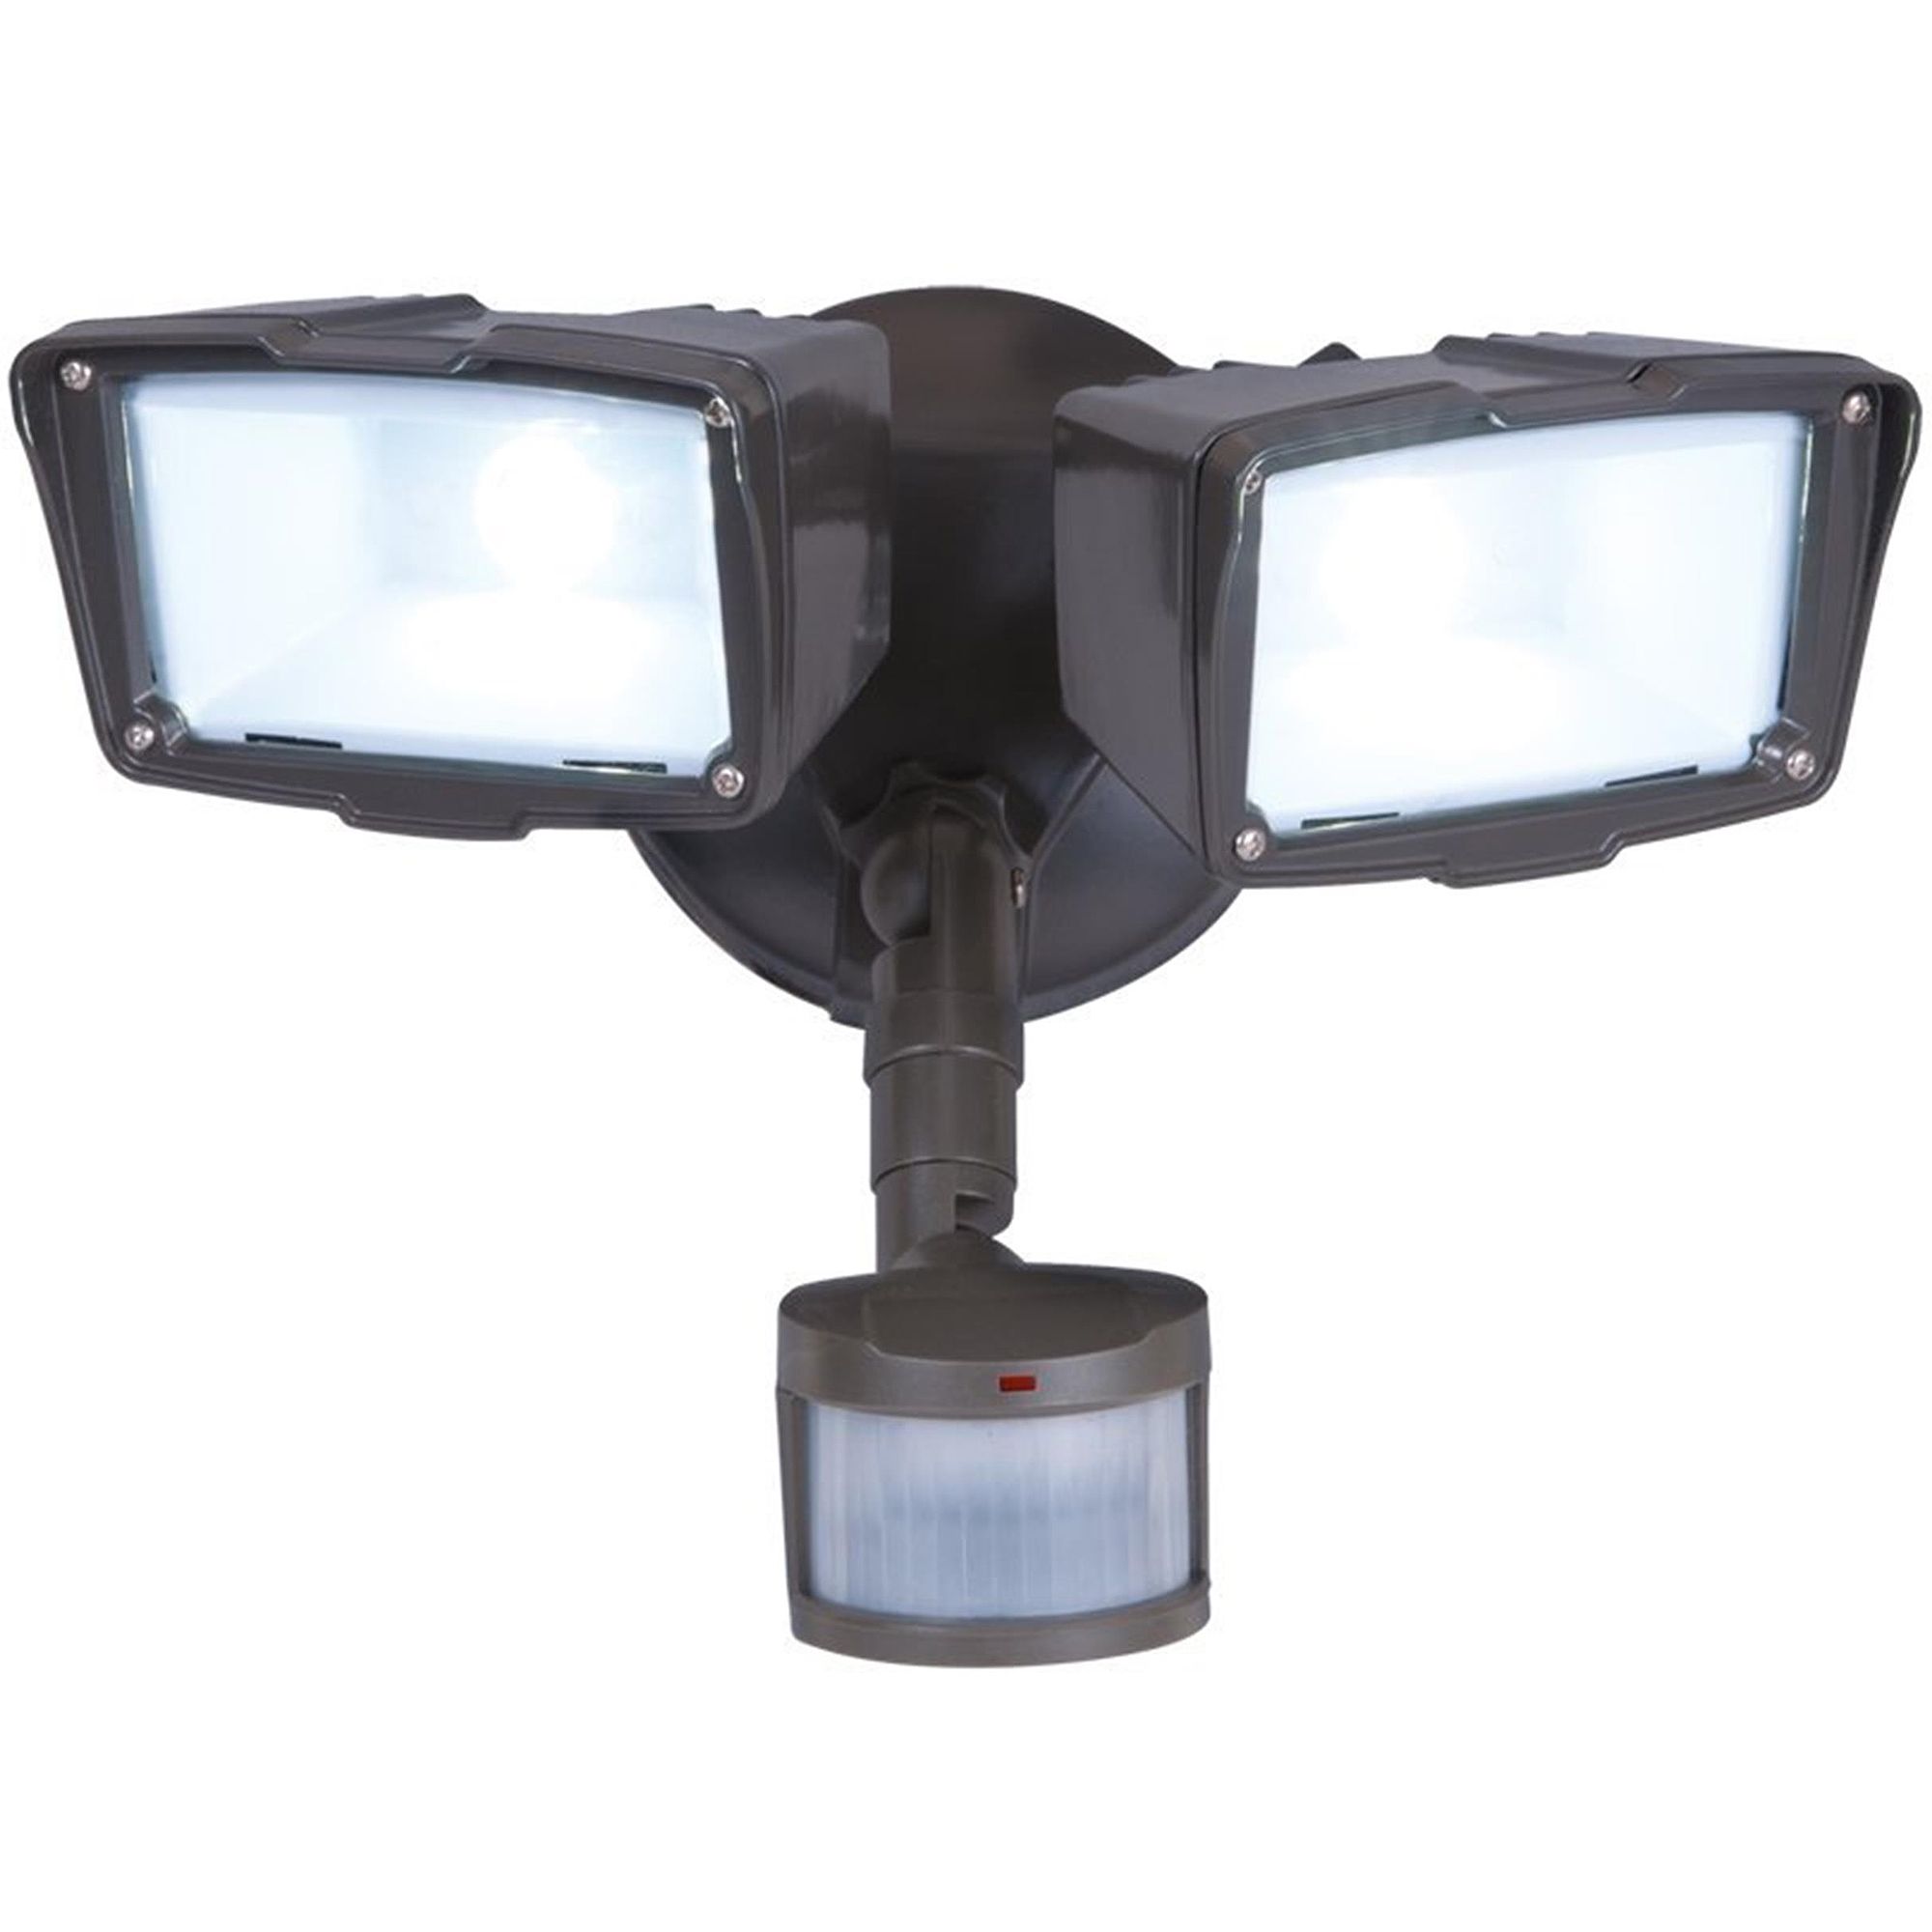 All Pro Outdoor Security 180 Degree Motion Activated Twin Head LED  Floodlight  Bronze   Walmart comAll Pro Outdoor Security 180 Degree Motion Activated Twin Head LED  . Exterior Flood Light. Home Design Ideas